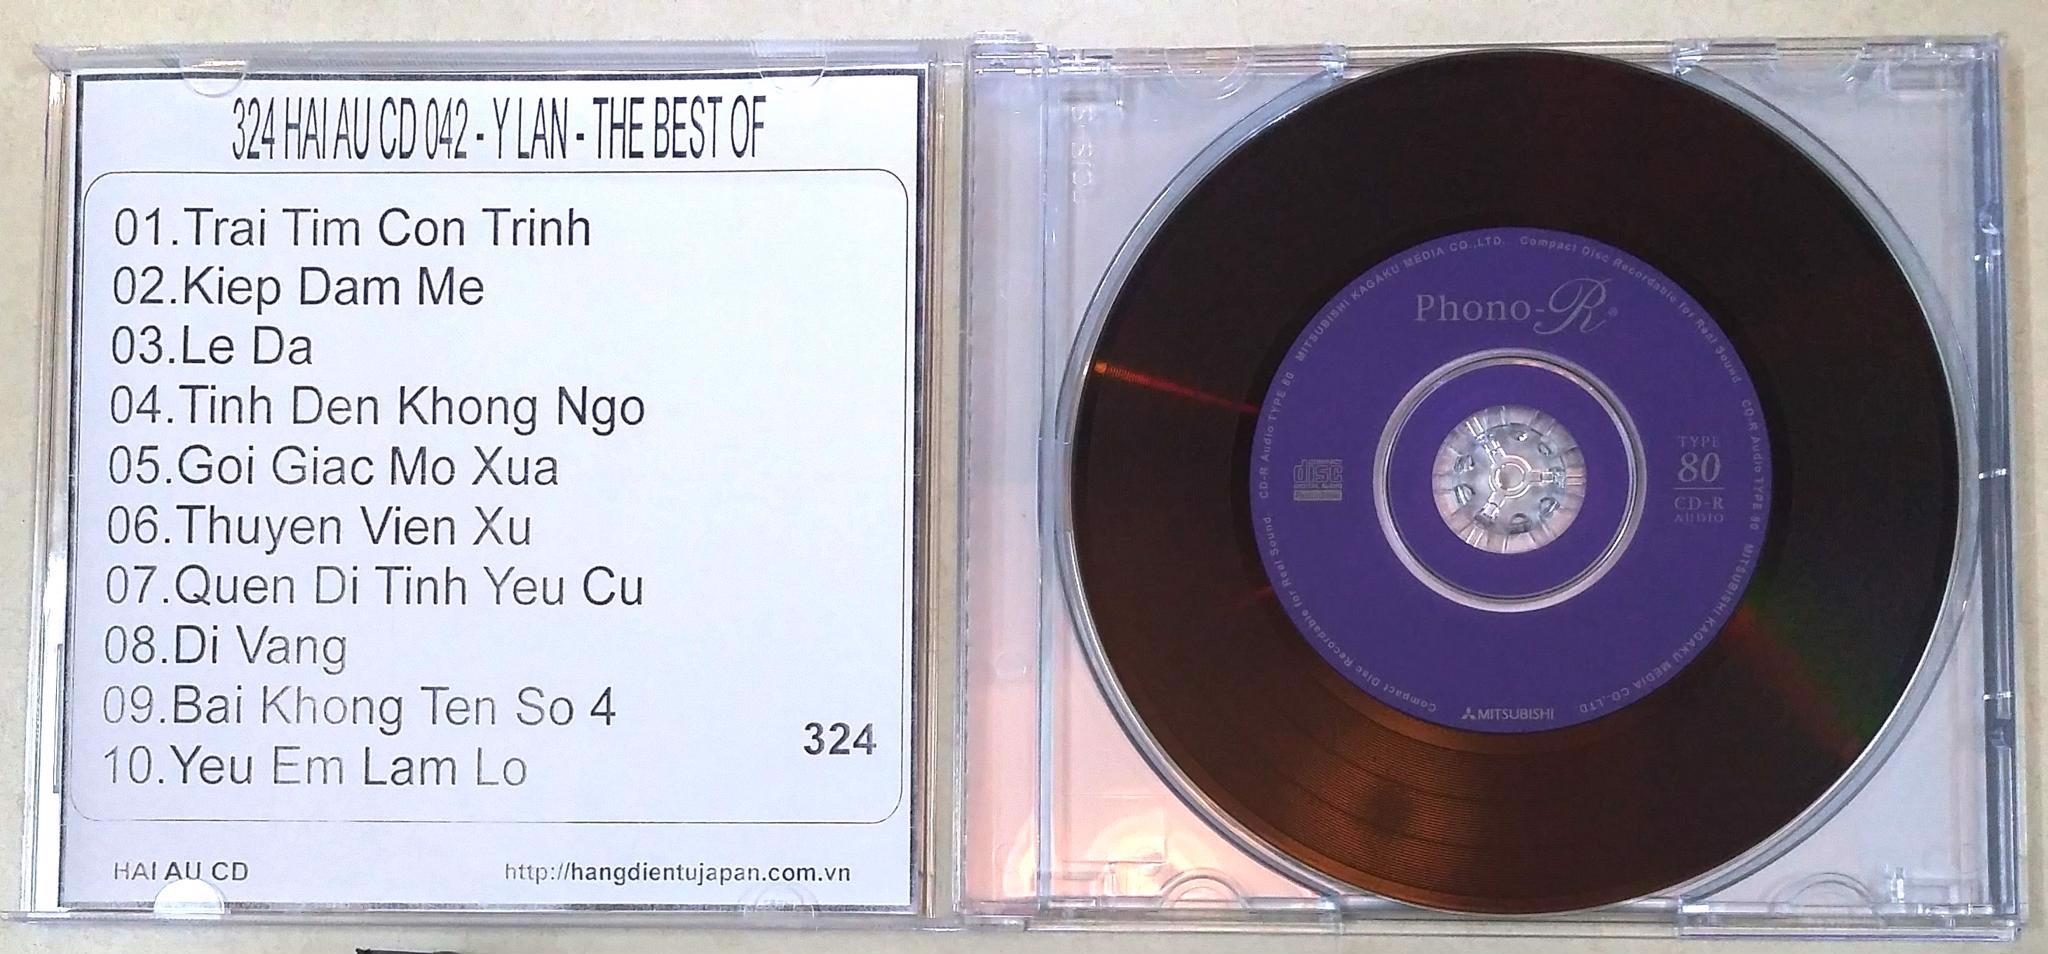 324 HAI AU CD 042 - Y LAN - THE BEST OF